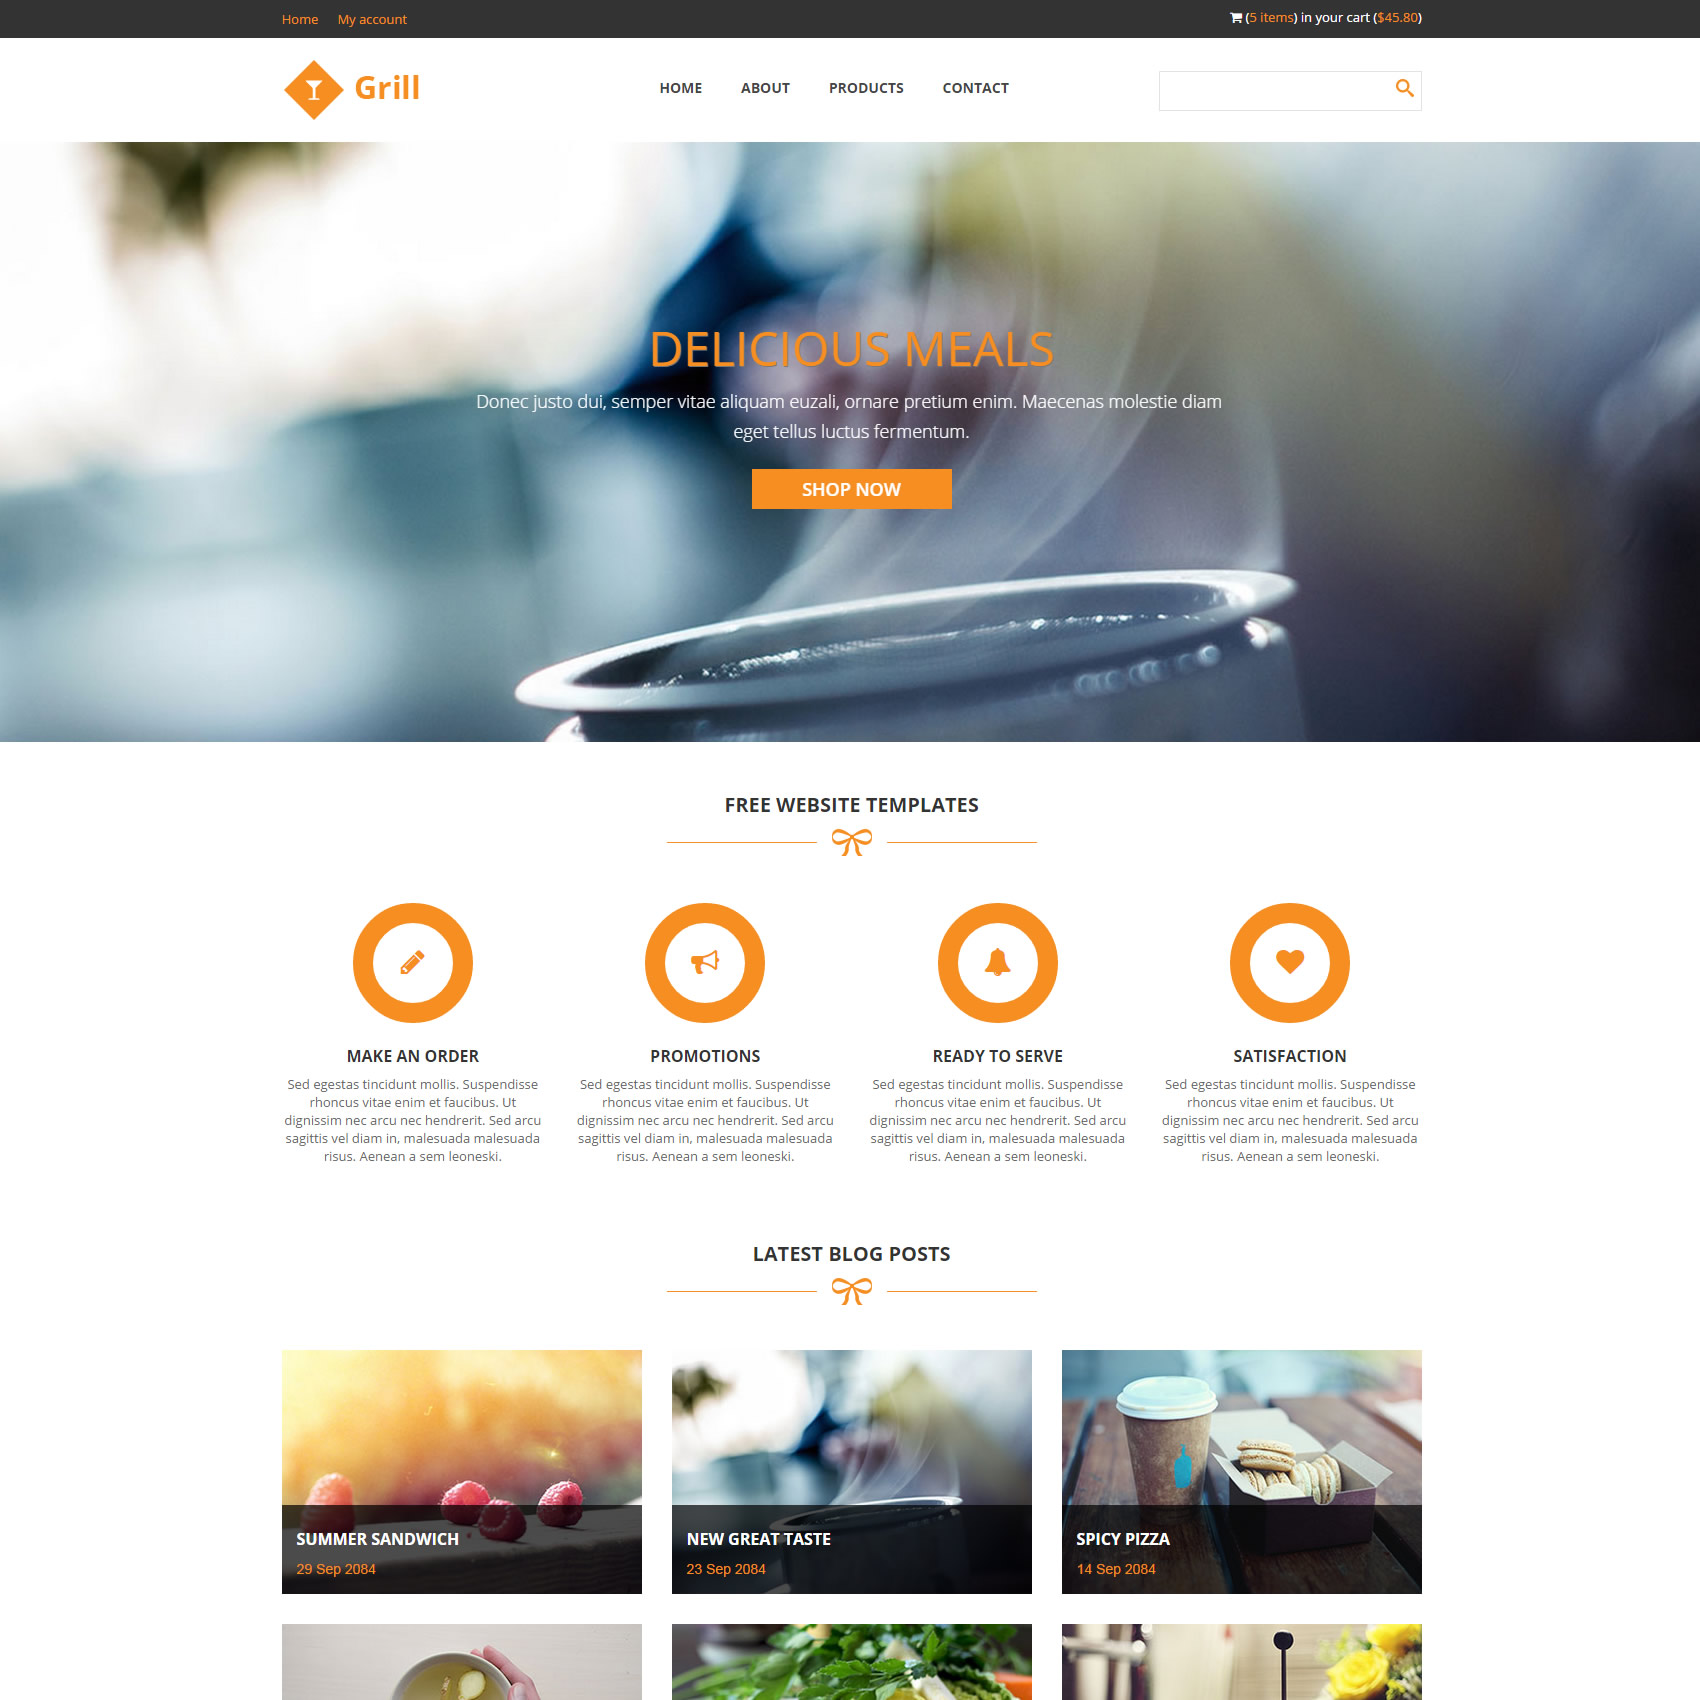 template html5 css3 free download contestcounsel